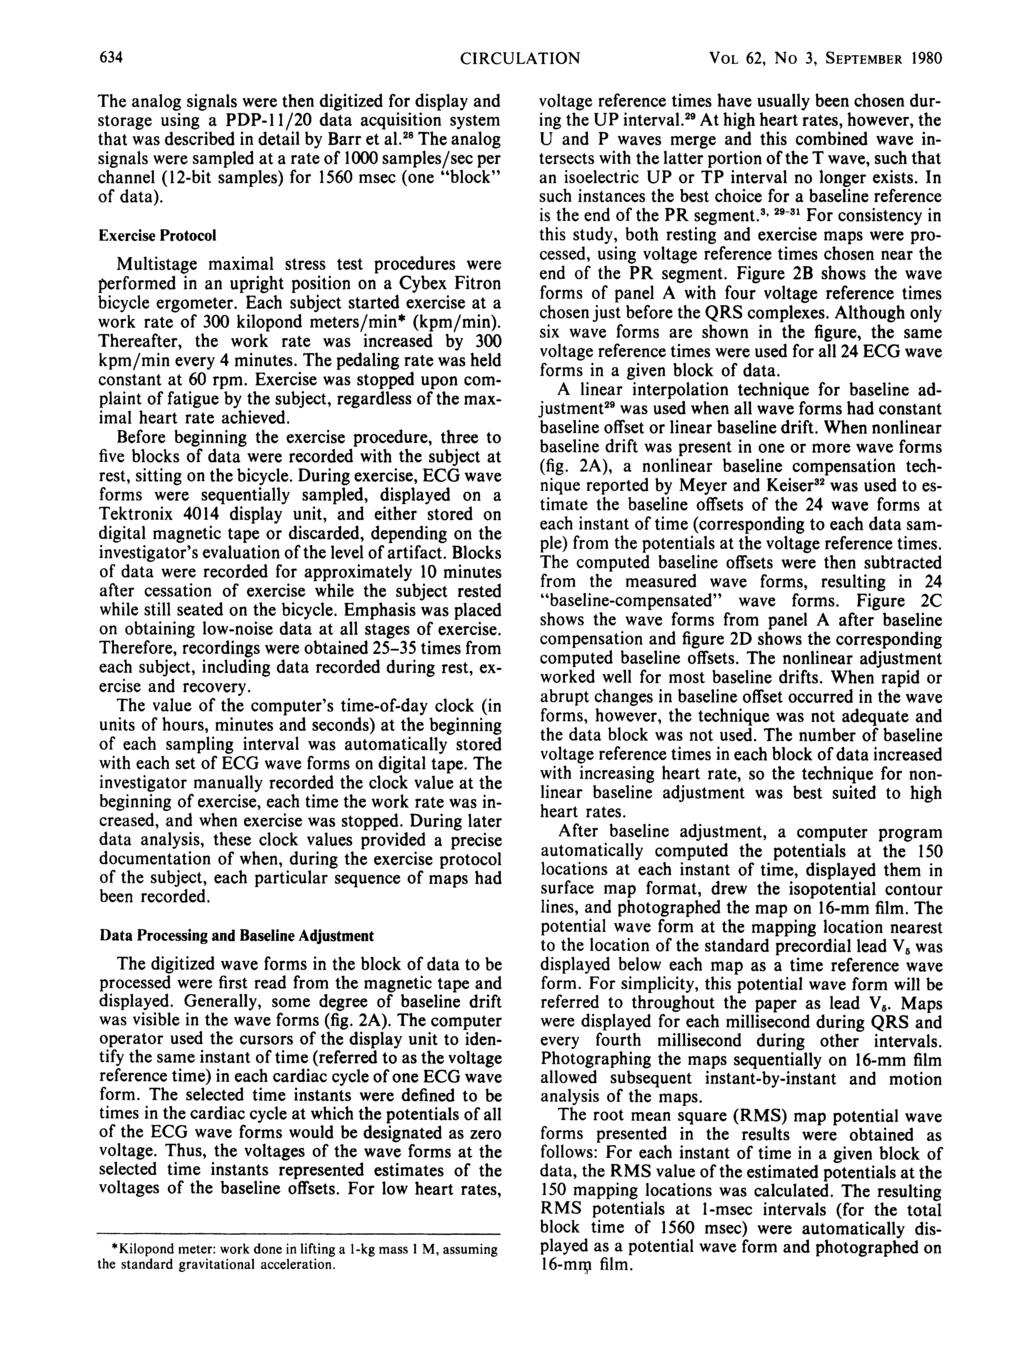 634 CIRCULATION VOL 62, No 3, SEPTEMBER 1980 The analog signals were then digitized for display and storage using a PDP-11/20 data acquisition system that was described in detail by Barr et al.